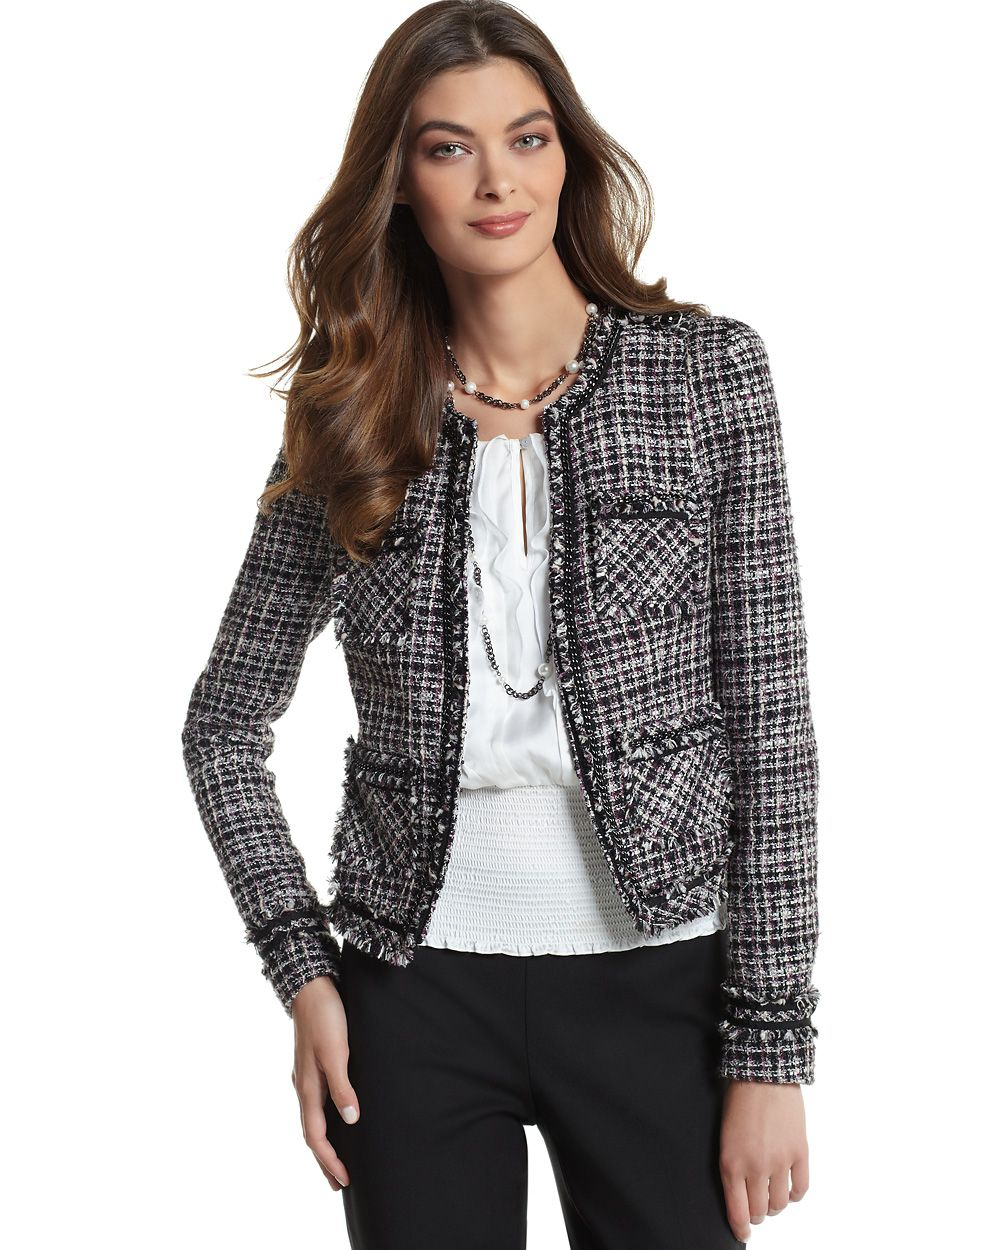 Women's Jackets & Coats - Stylish Jackets & Outerwear, Casual ...